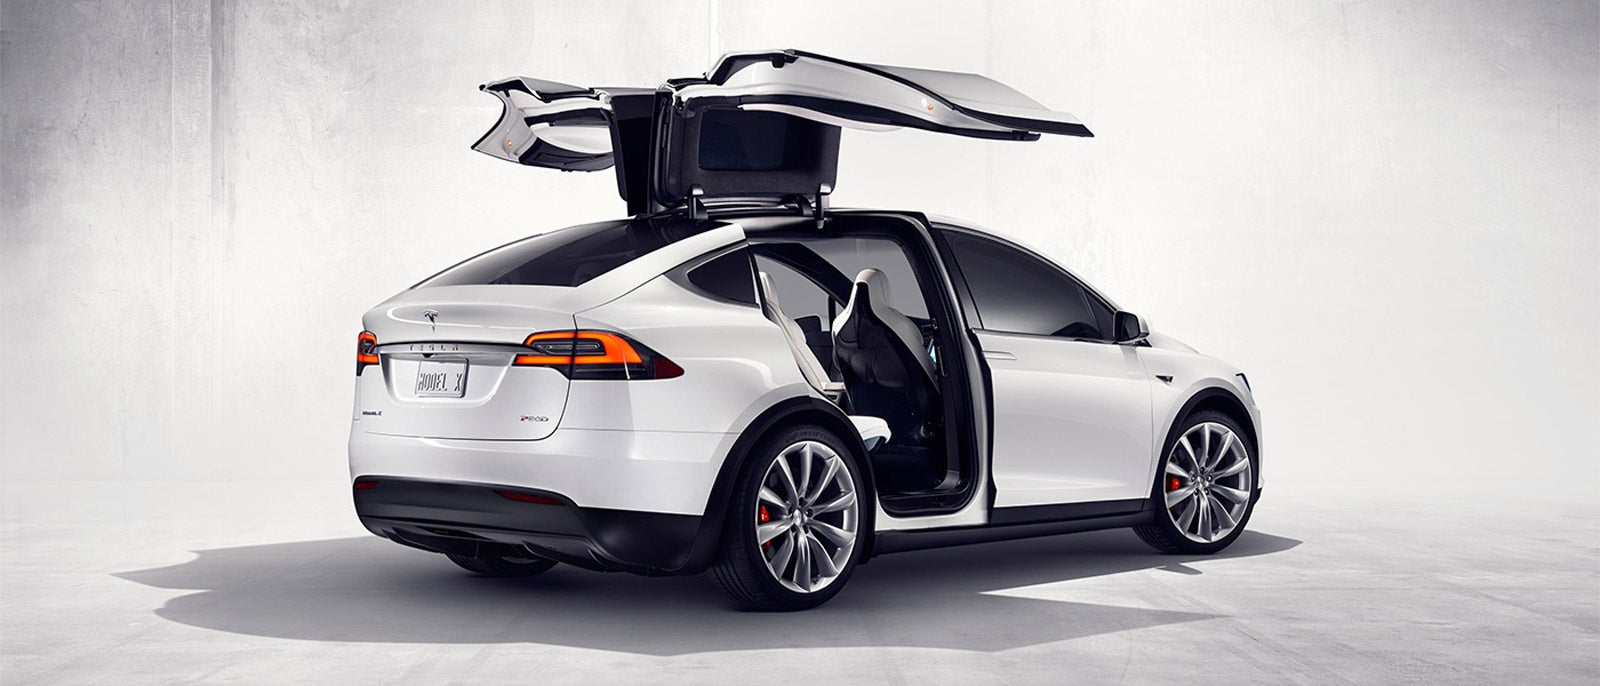 Watch The Tesla Model X SUV's 'Falcon' Doors In Action